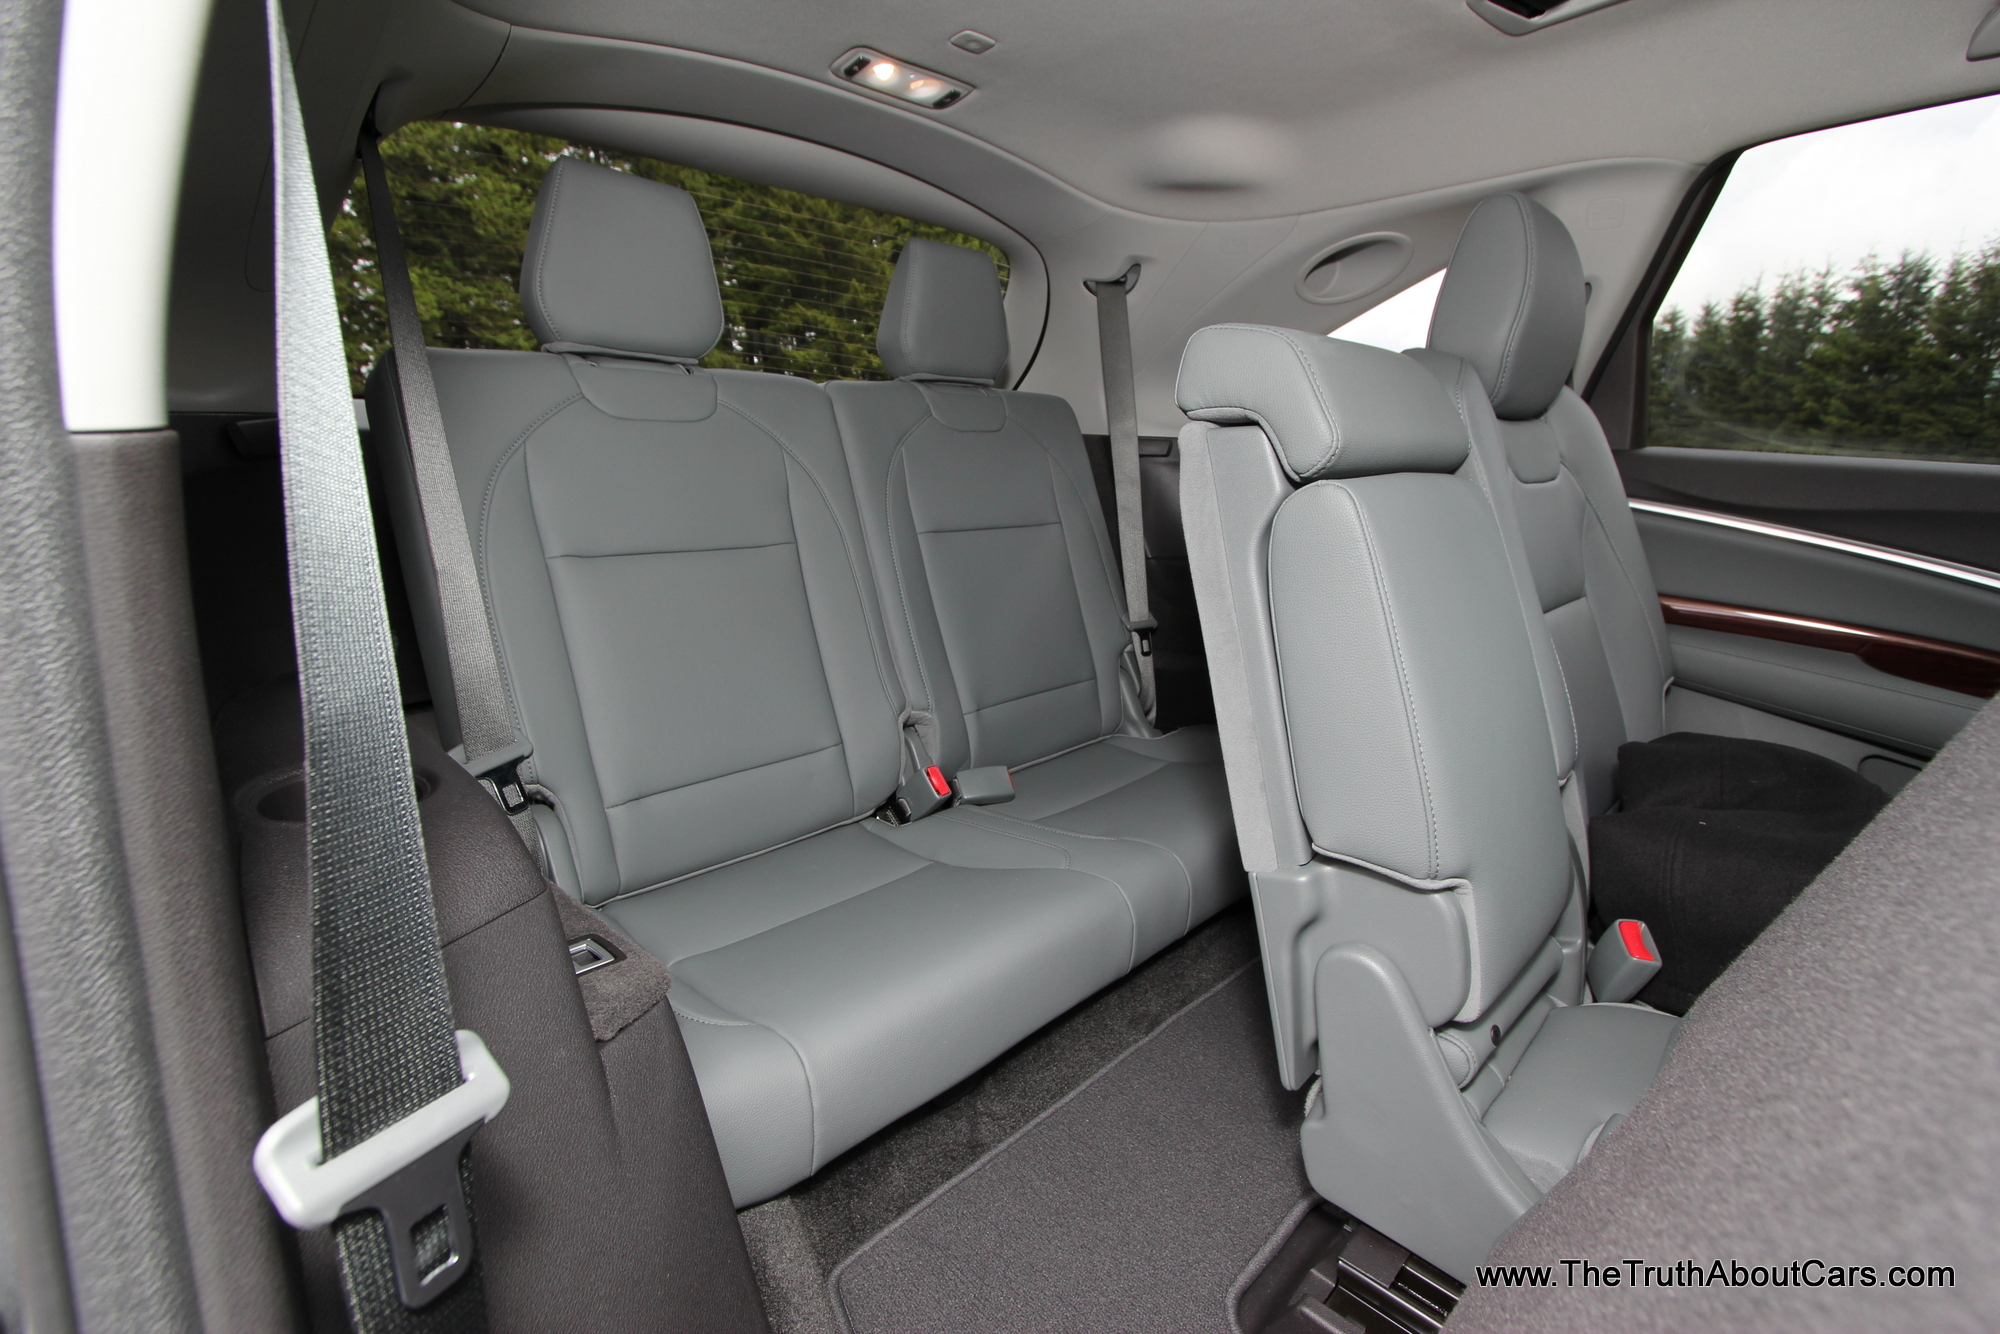 acura mdx 2014 interior third row images galleries with a bite. Black Bedroom Furniture Sets. Home Design Ideas